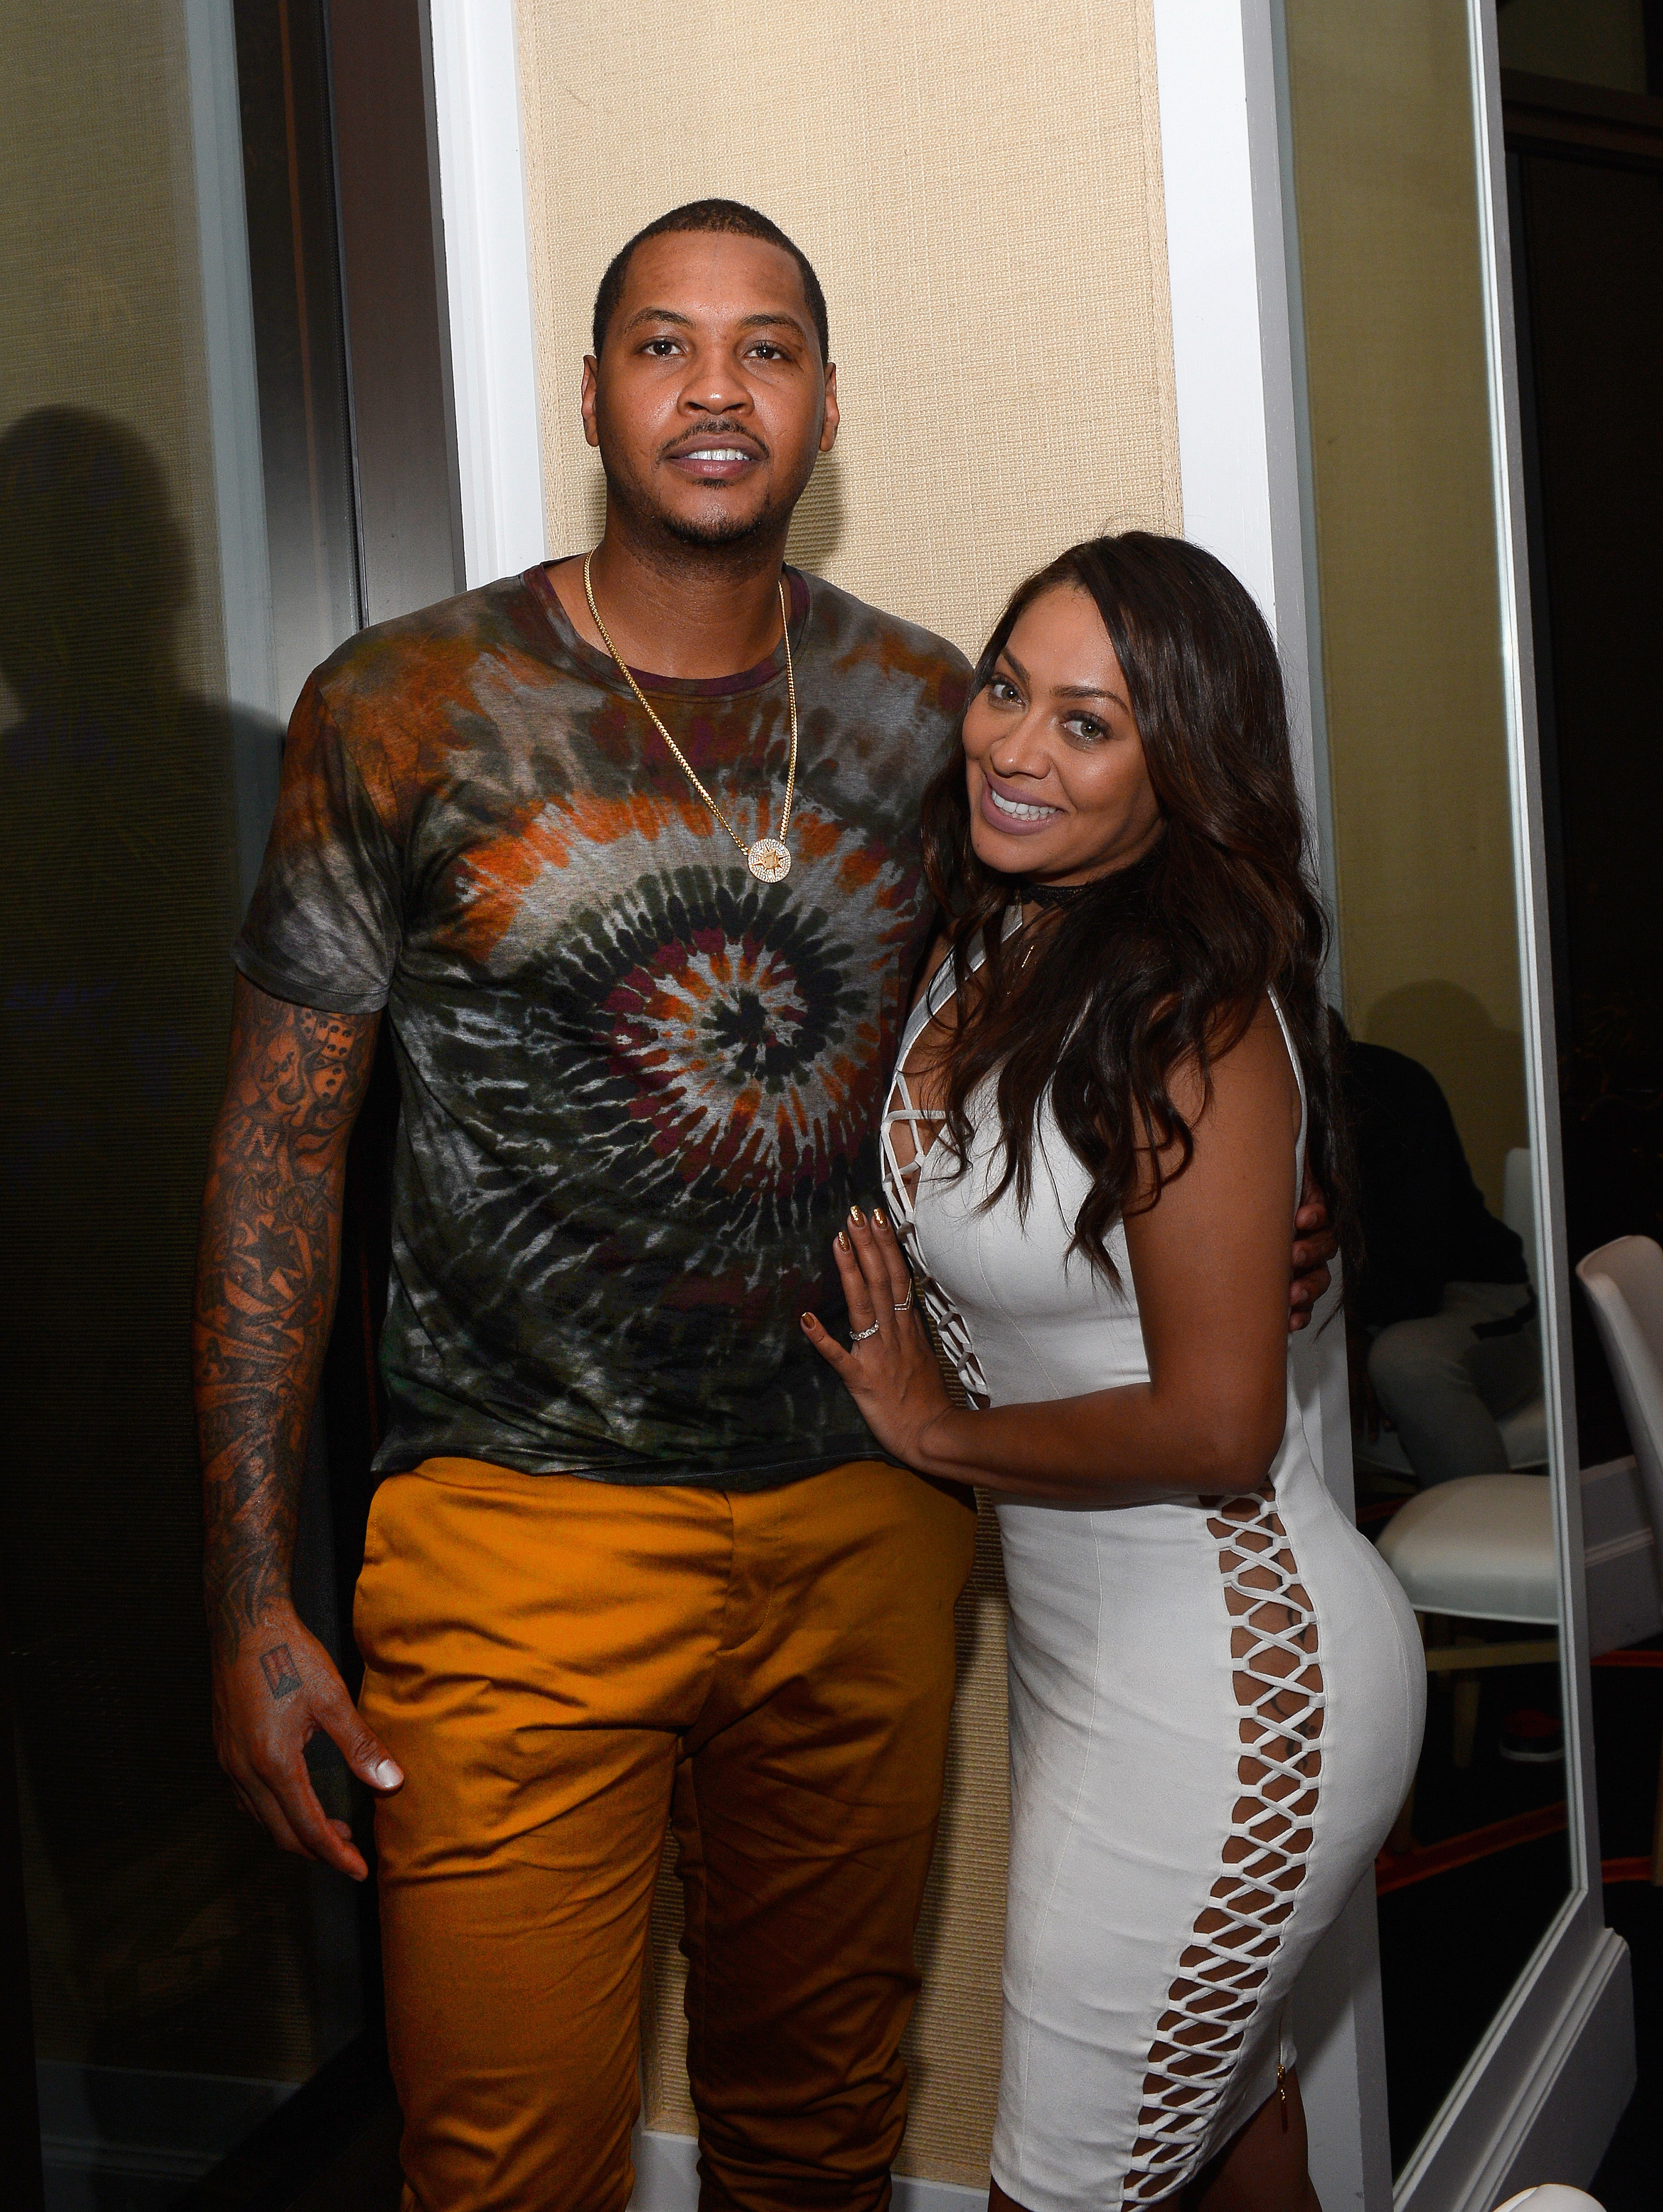 Look How Proud La La Is of Husband Carmelo Anthony for Bringing Home Gold